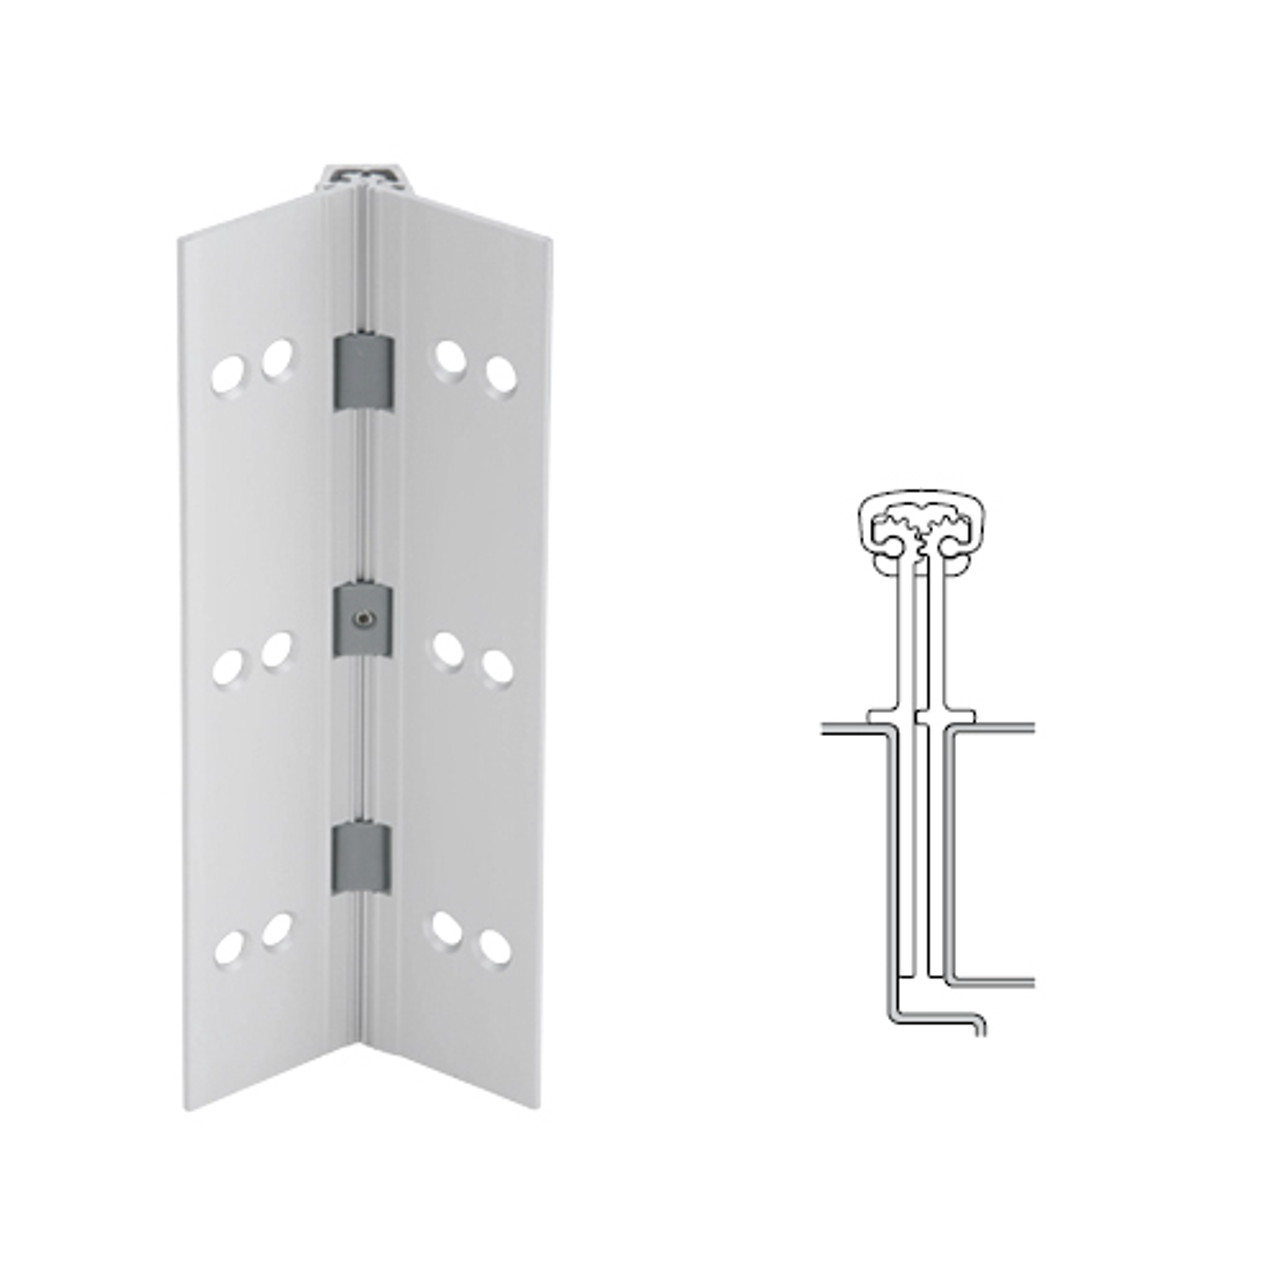 040XY-US28-83-TEKWD IVES Full Mortise Continuous Geared Hinges with Wood Screws in Satin Aluminum